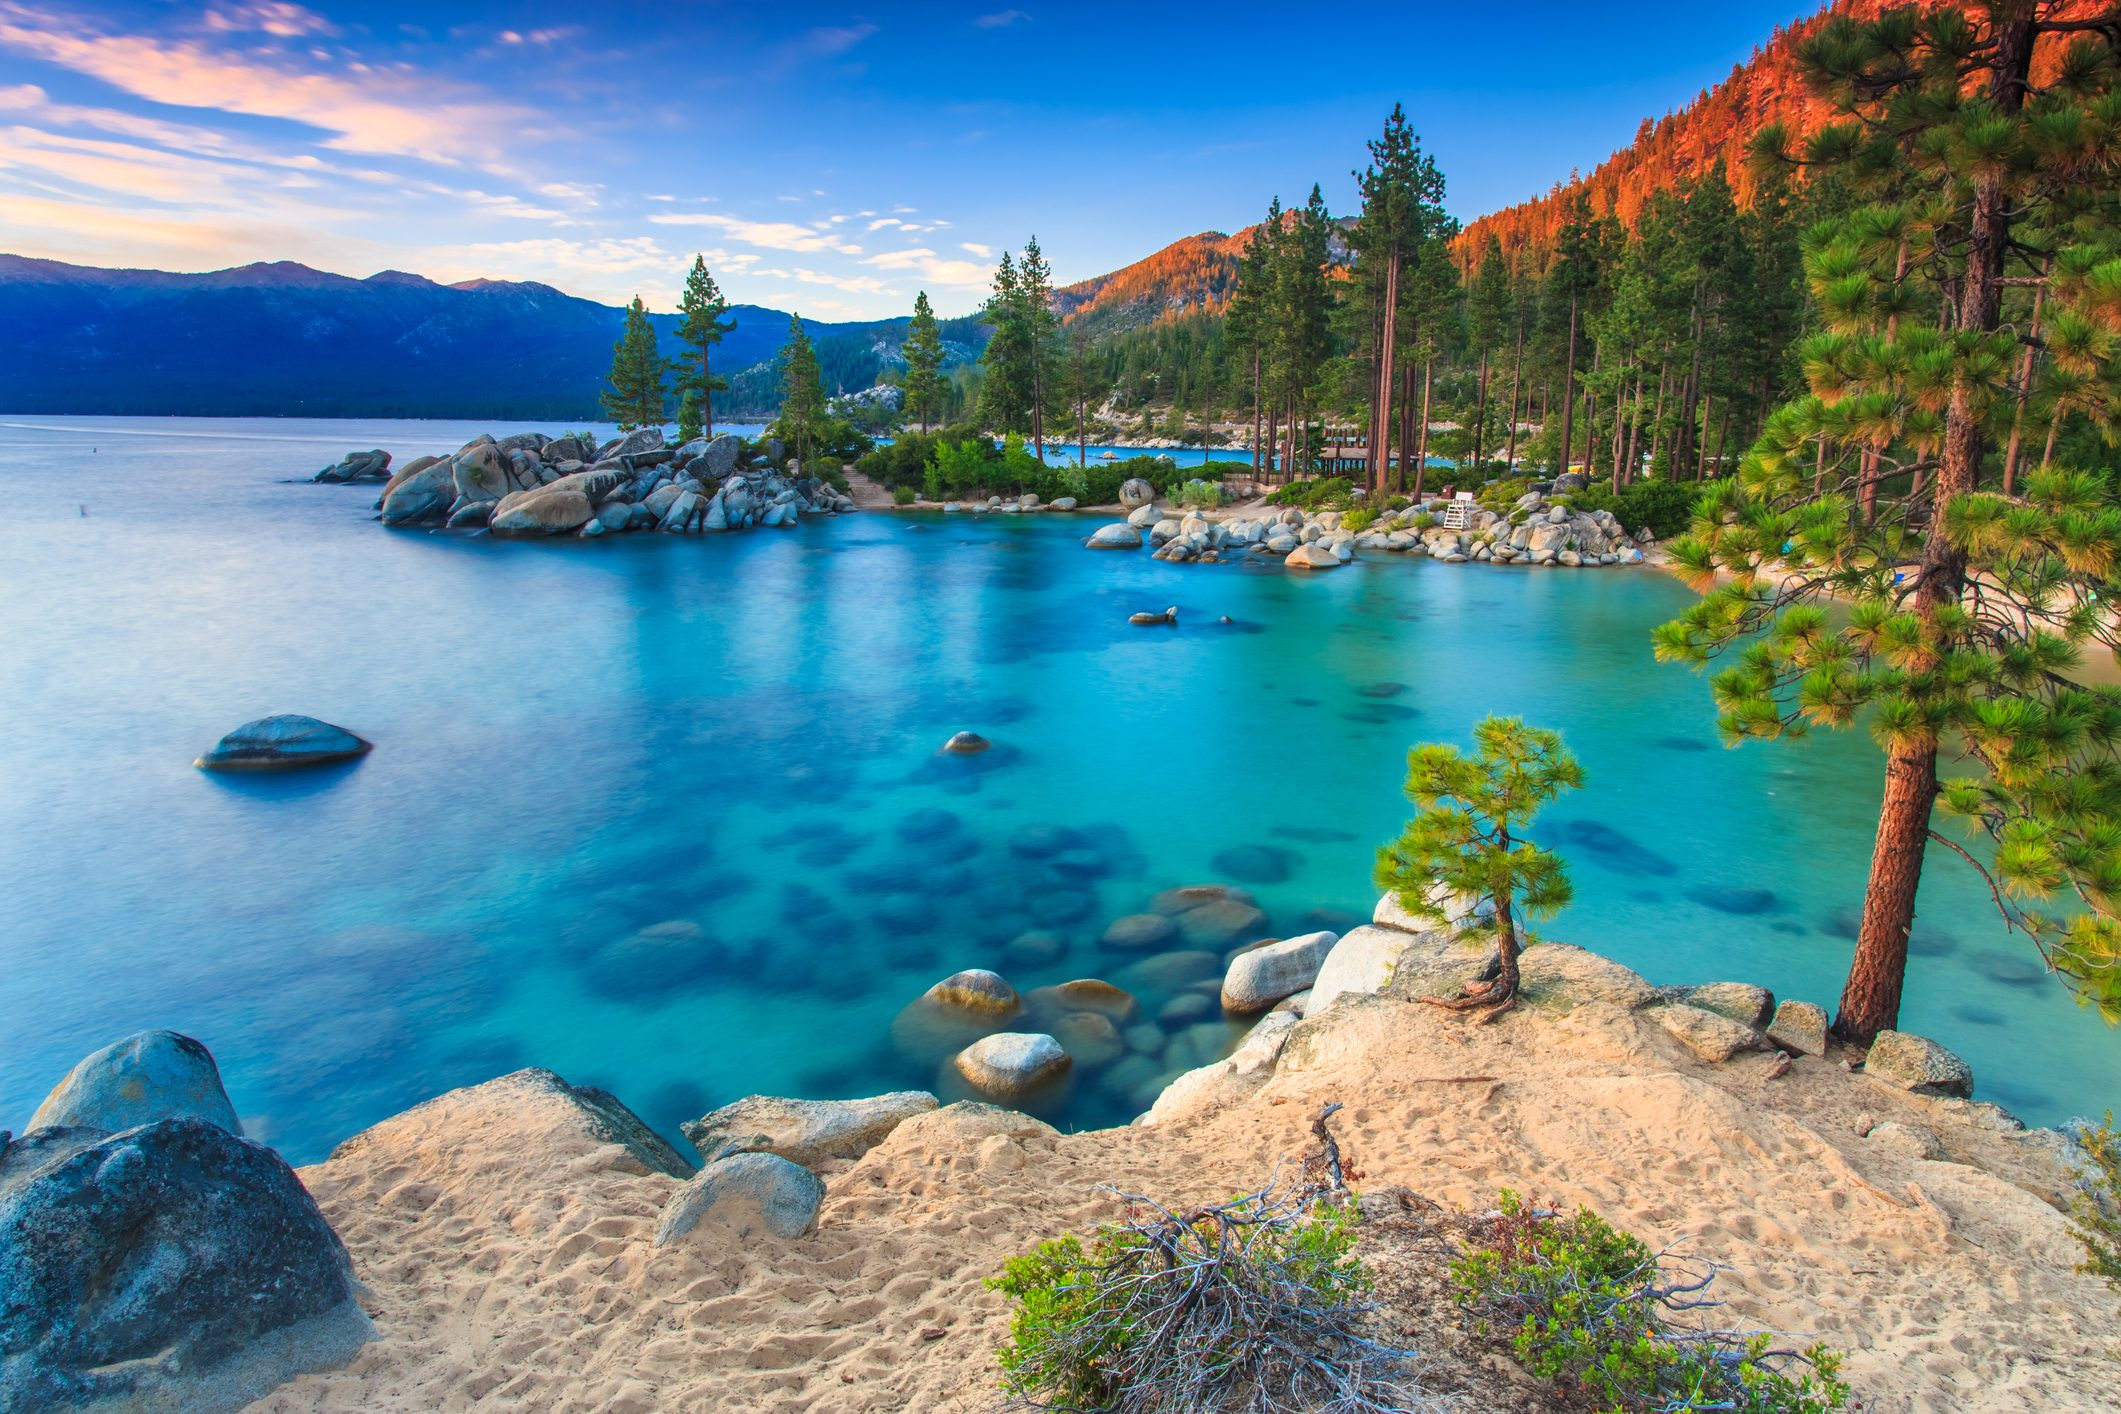 landscape and clear waters at Sand Harbor, Lake Tahoe, California